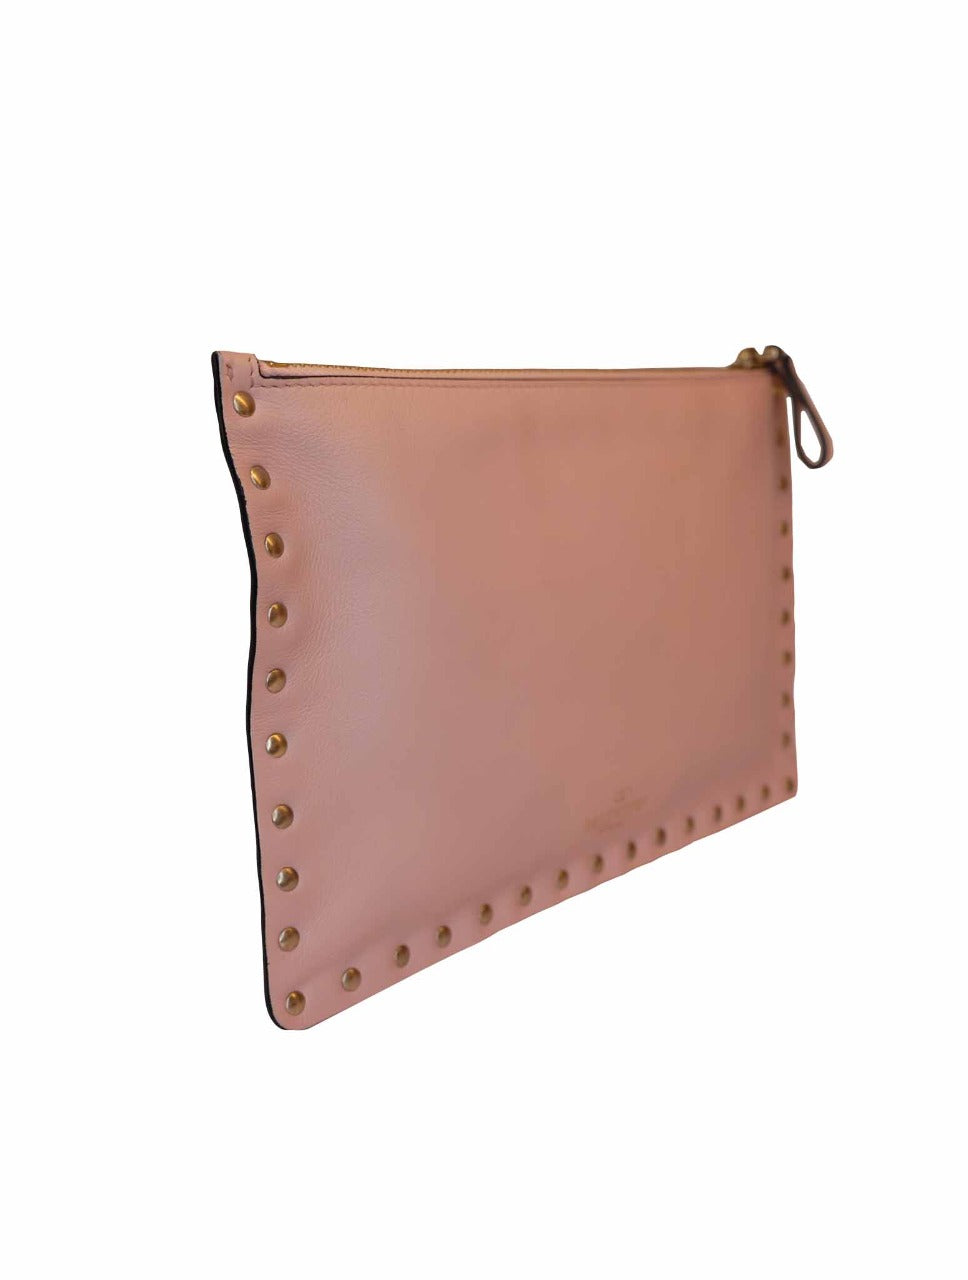 PINK LEATHER ROCKSTUD POUCH